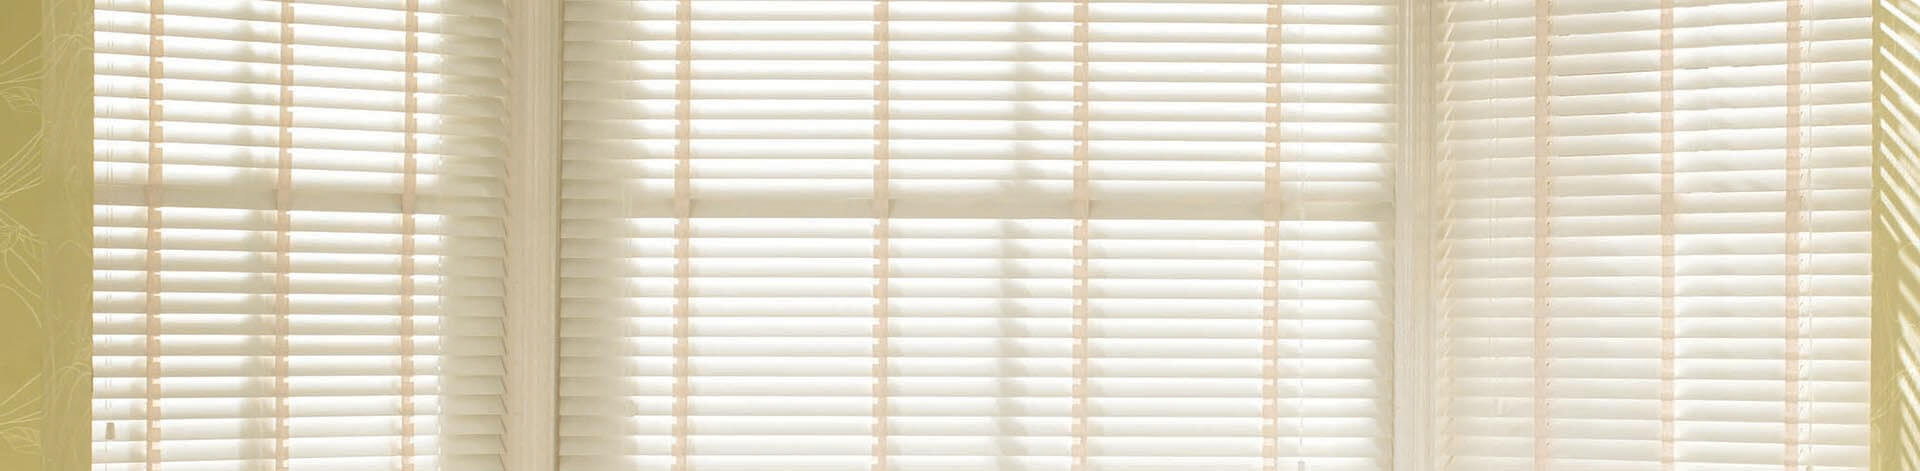 Discovery Blinds and Shutters Wooden Wide Slat Venetian